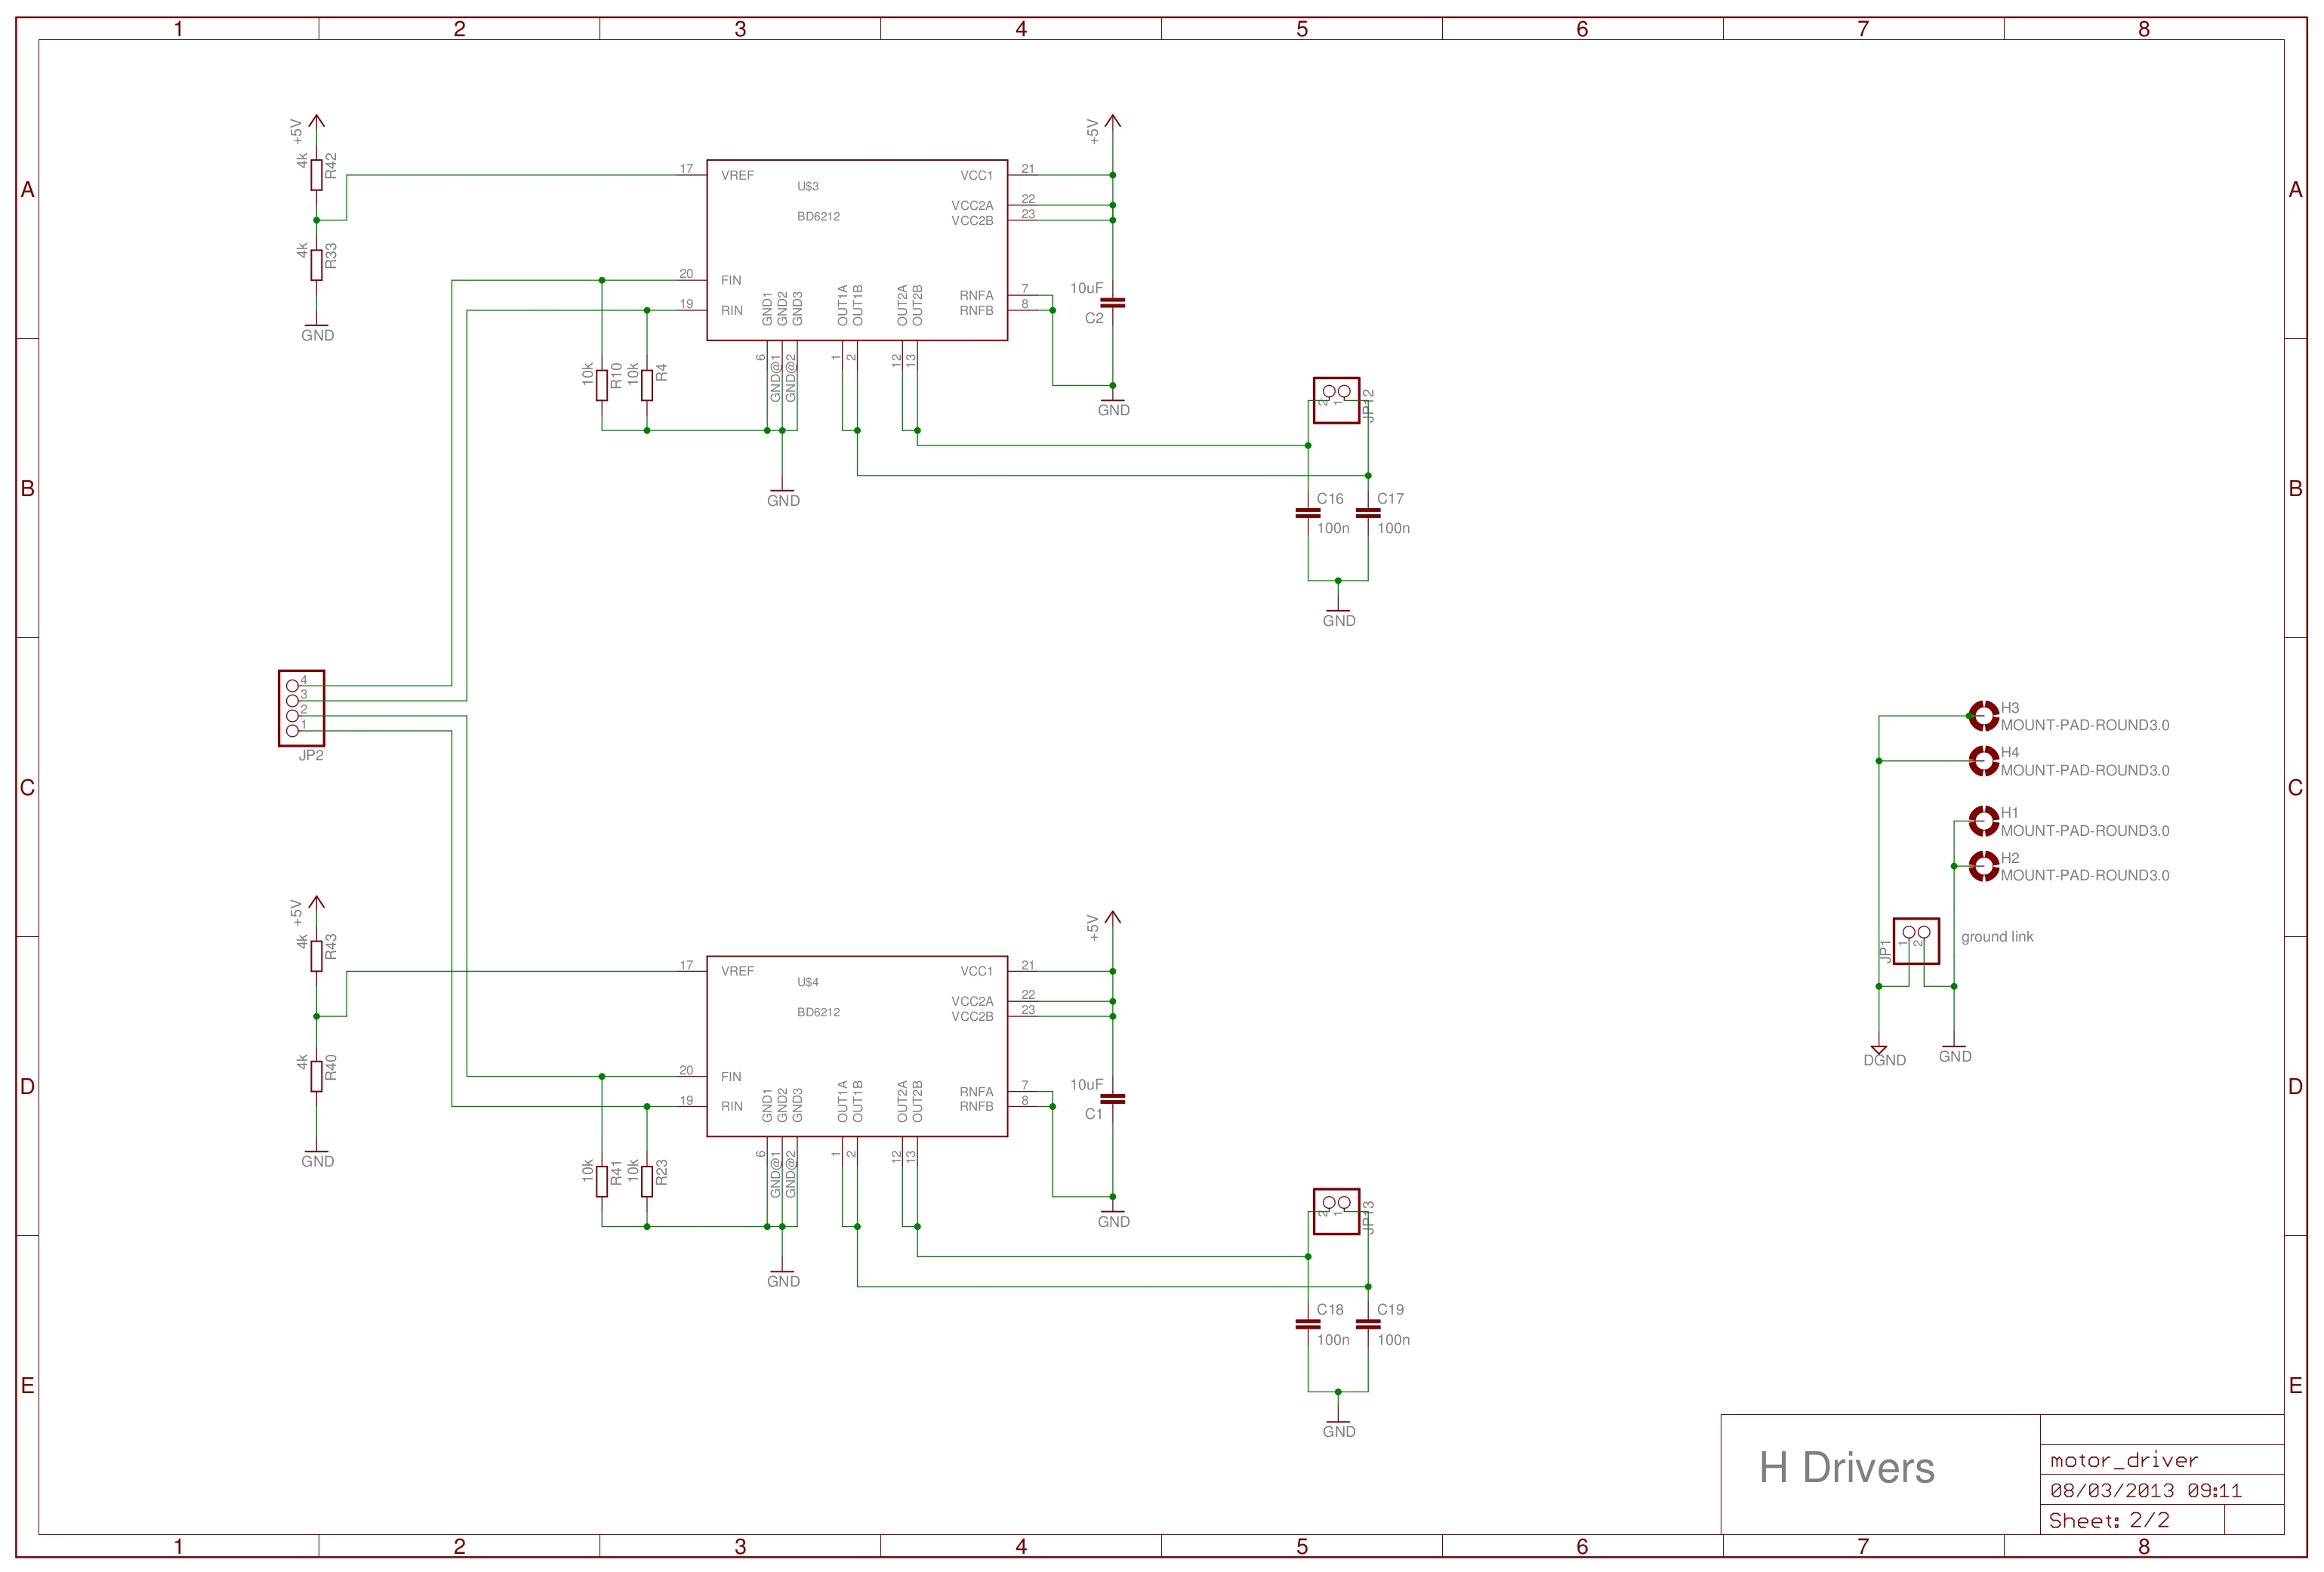 Cockroach V2 5v Regulated Power Supply Circuit Diagram And Figure 11 Motor Driver